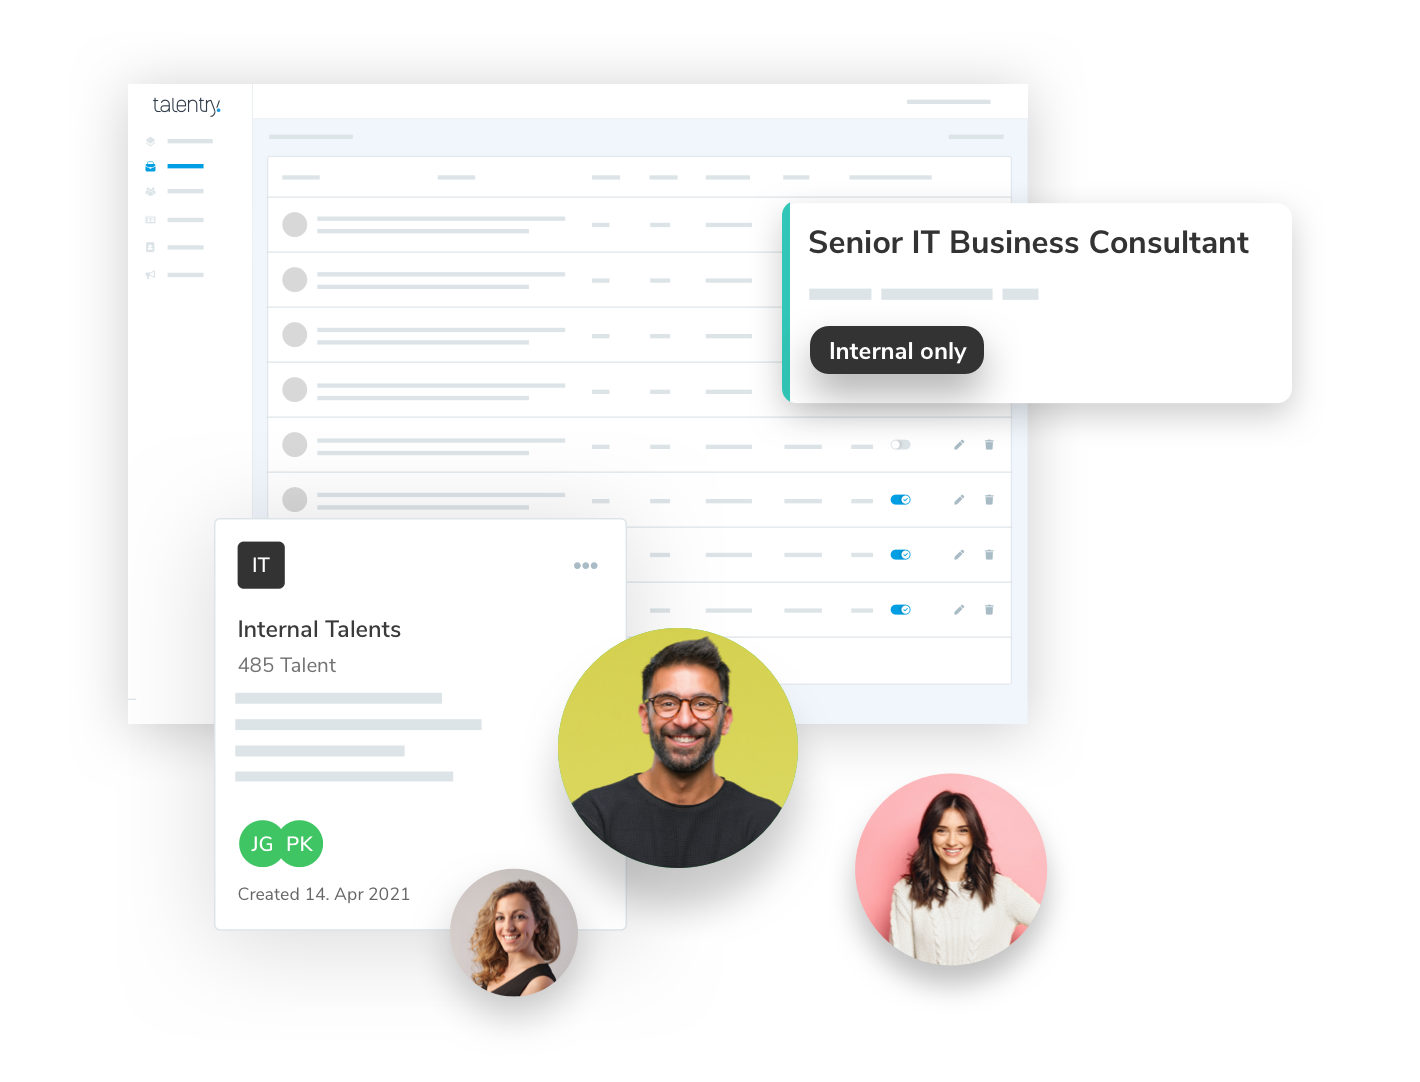 Talentry Talent Relationship Management Software to retain employees